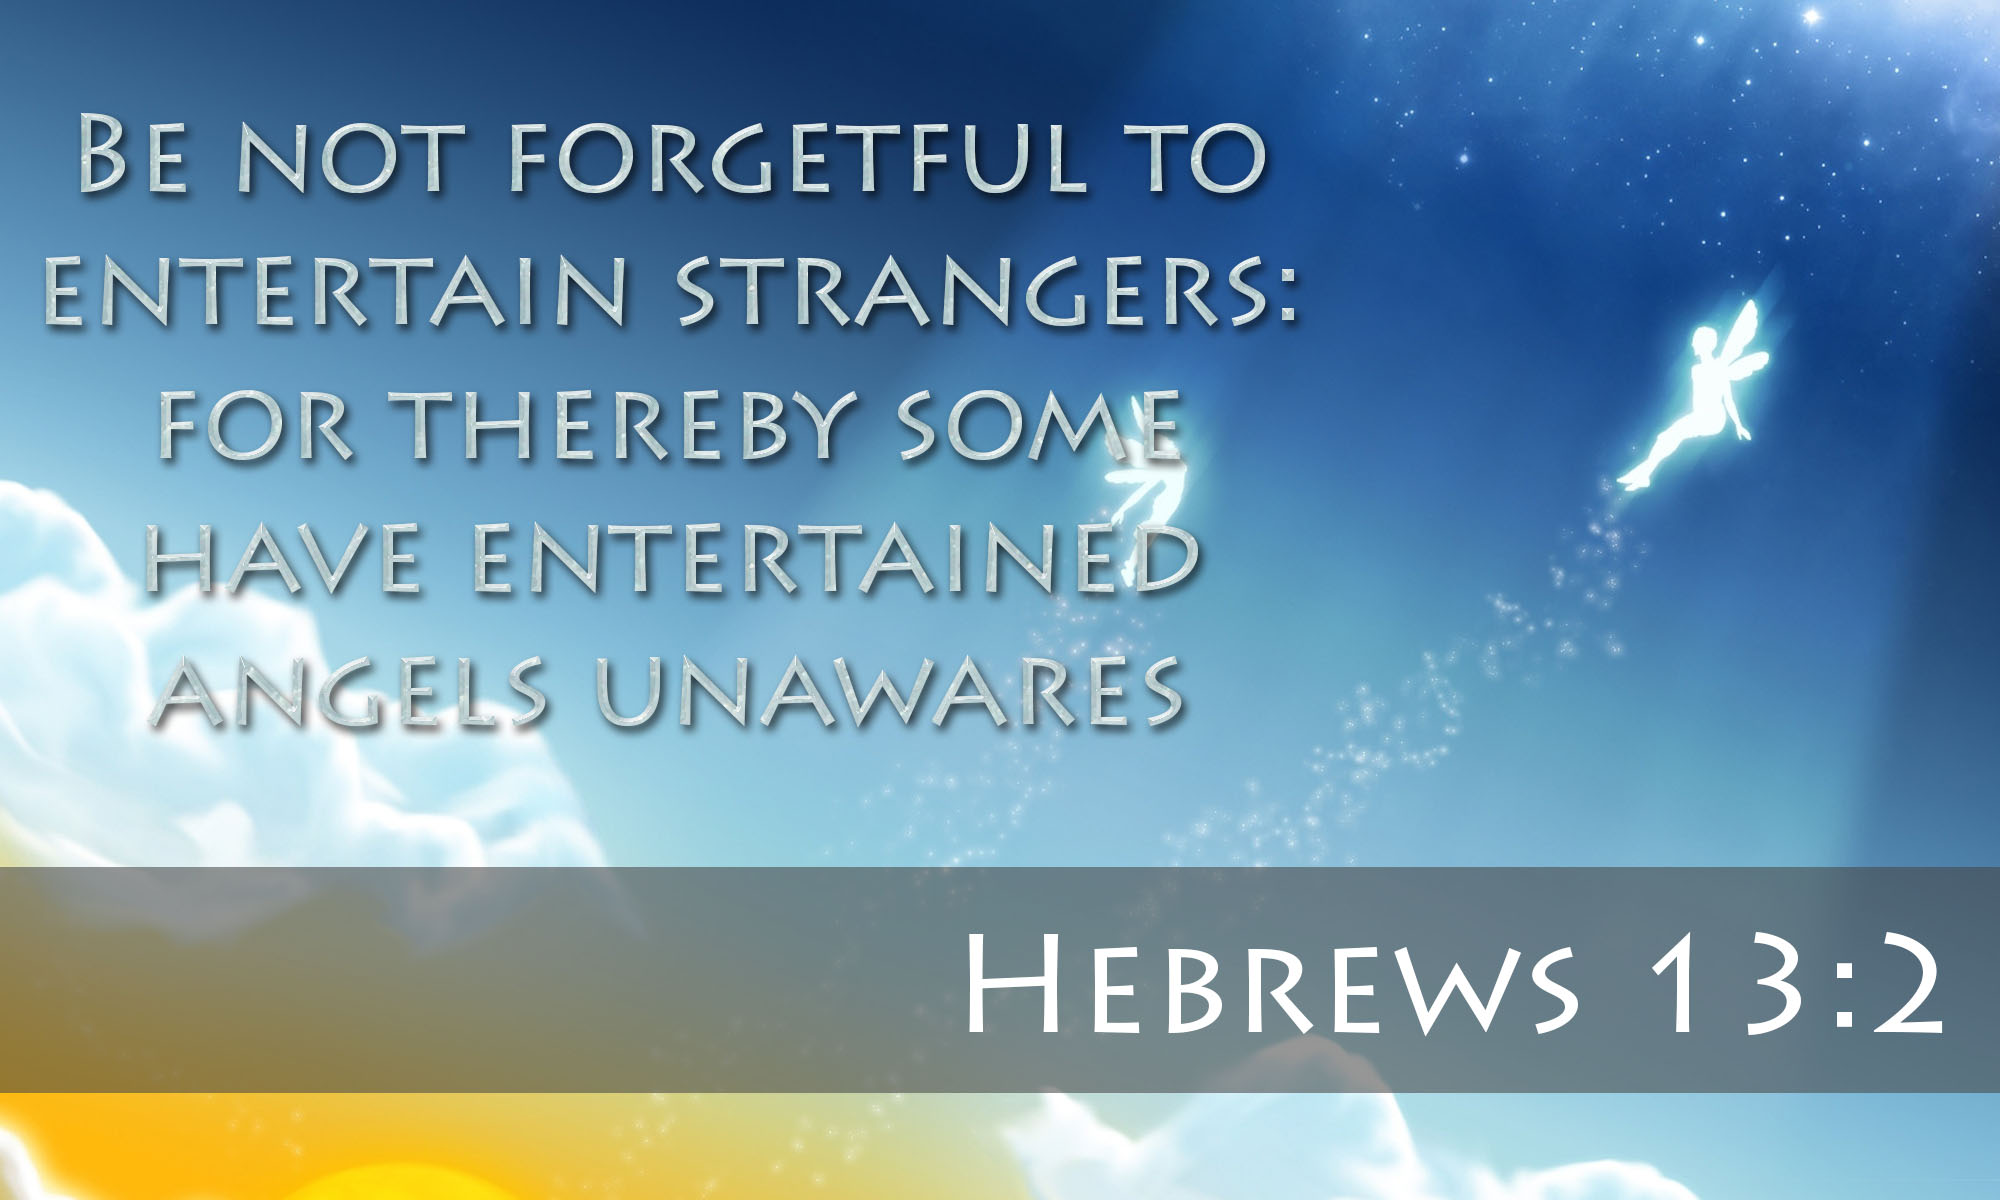 Be Not Forgetful to Entertain Strangers